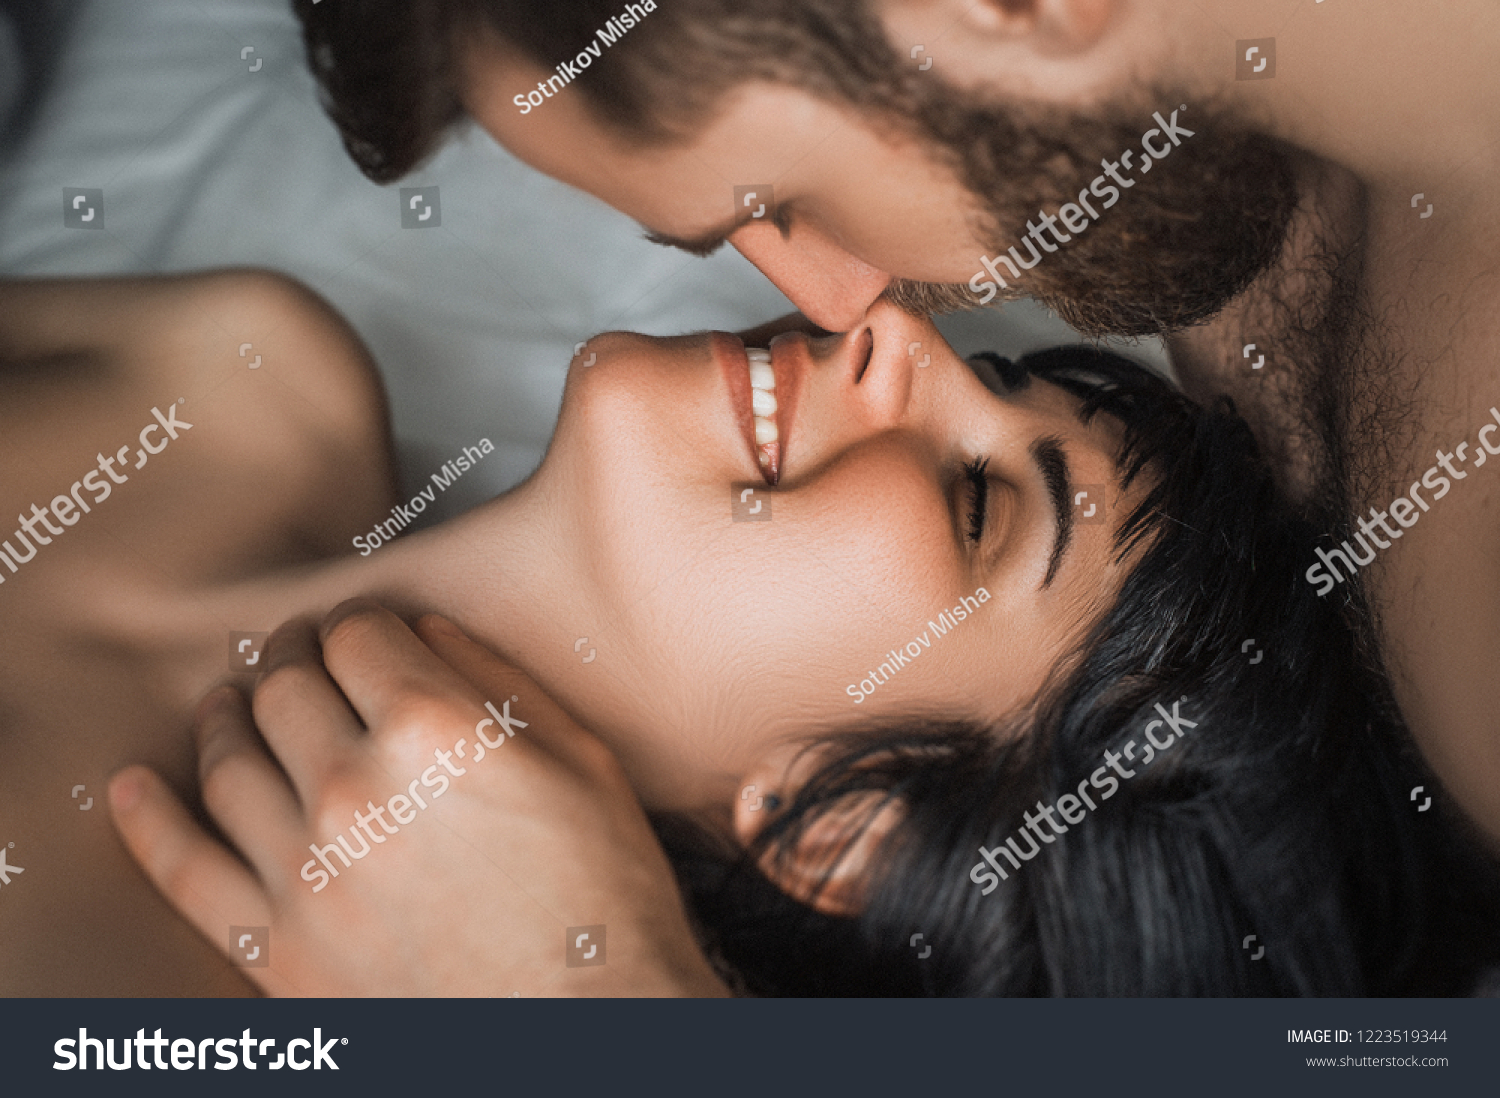 a guy and girl kissing